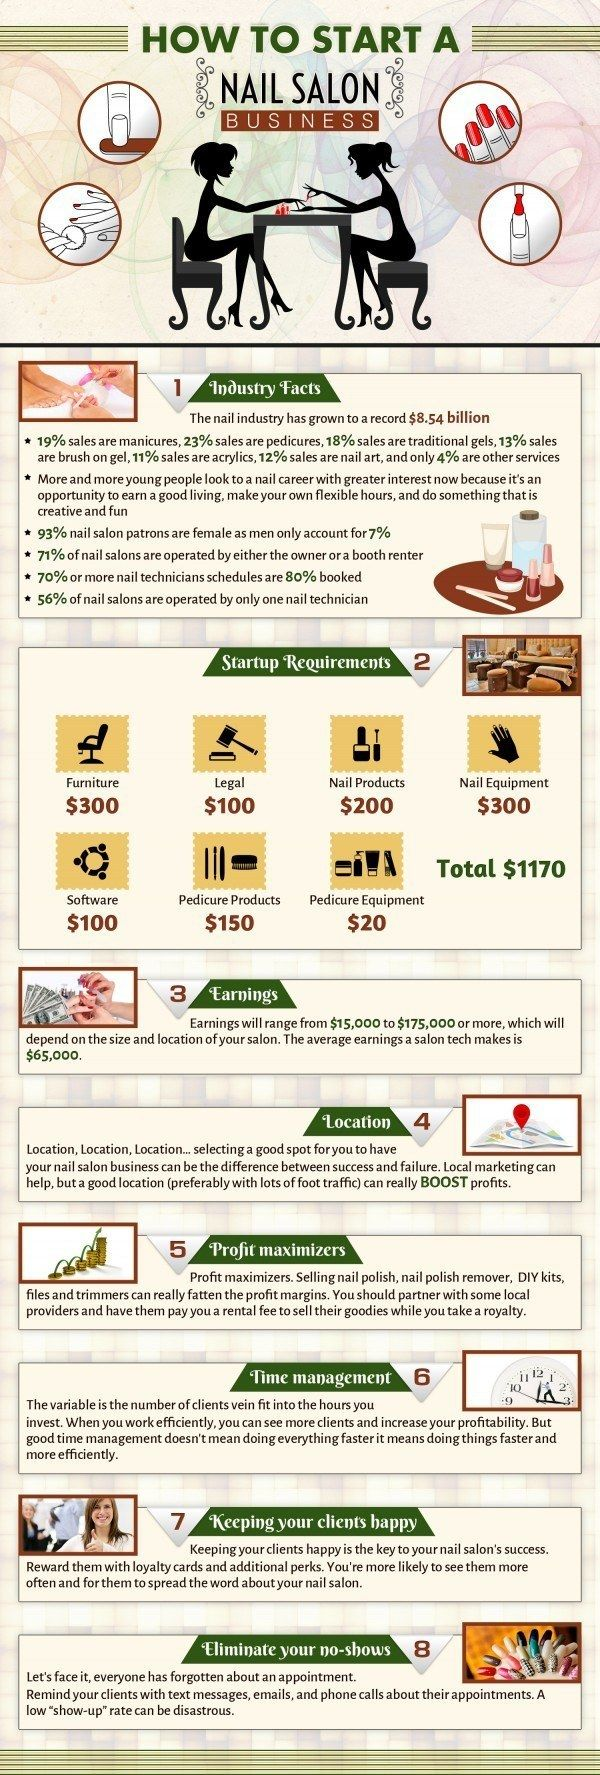 how to start a nail salon business infographic                                                                                                                                                                                 More